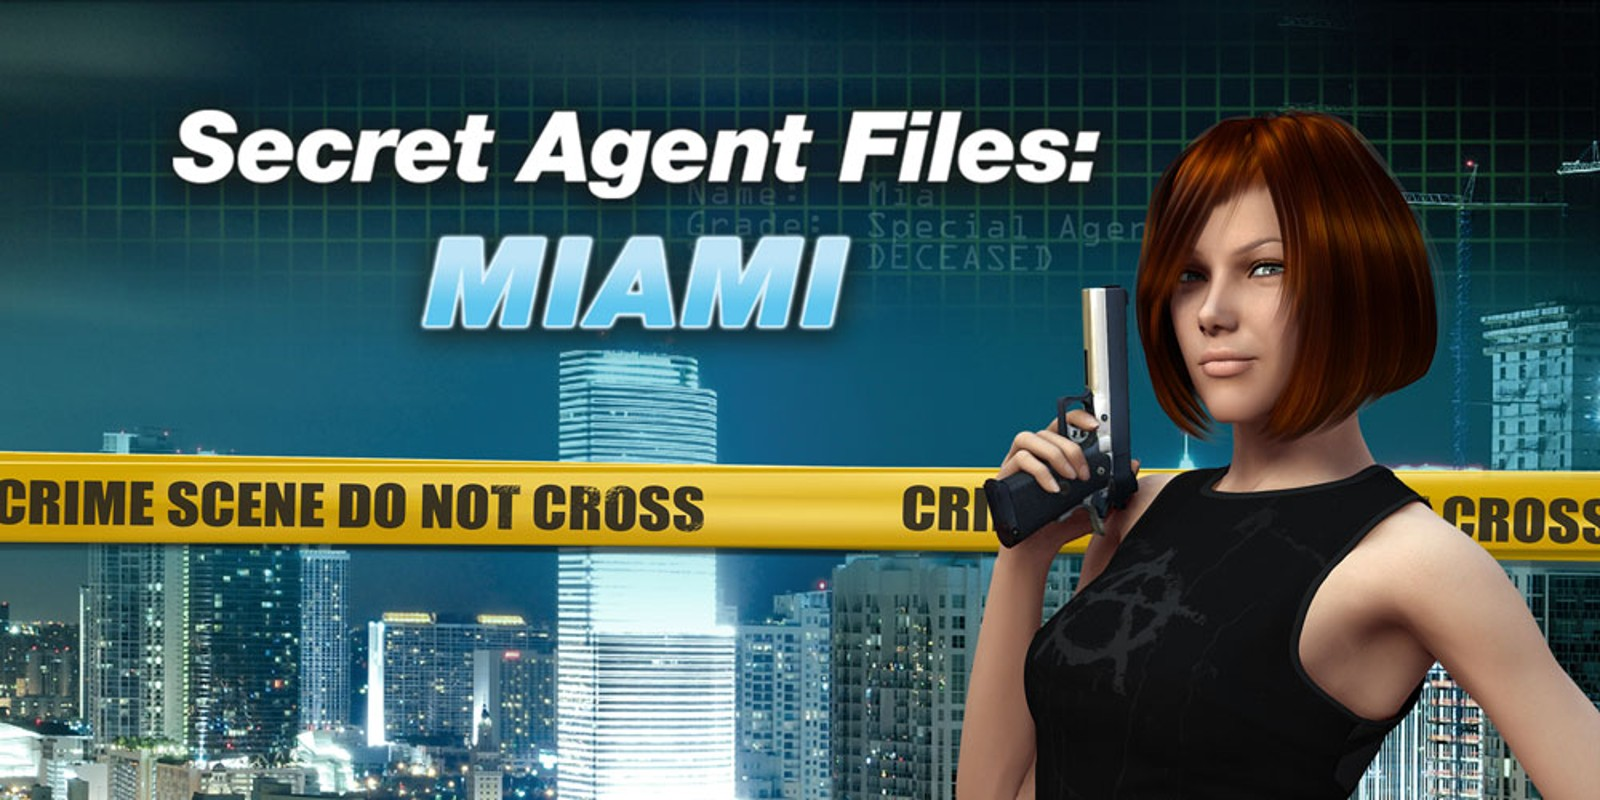 Secret Agent Files: Miami